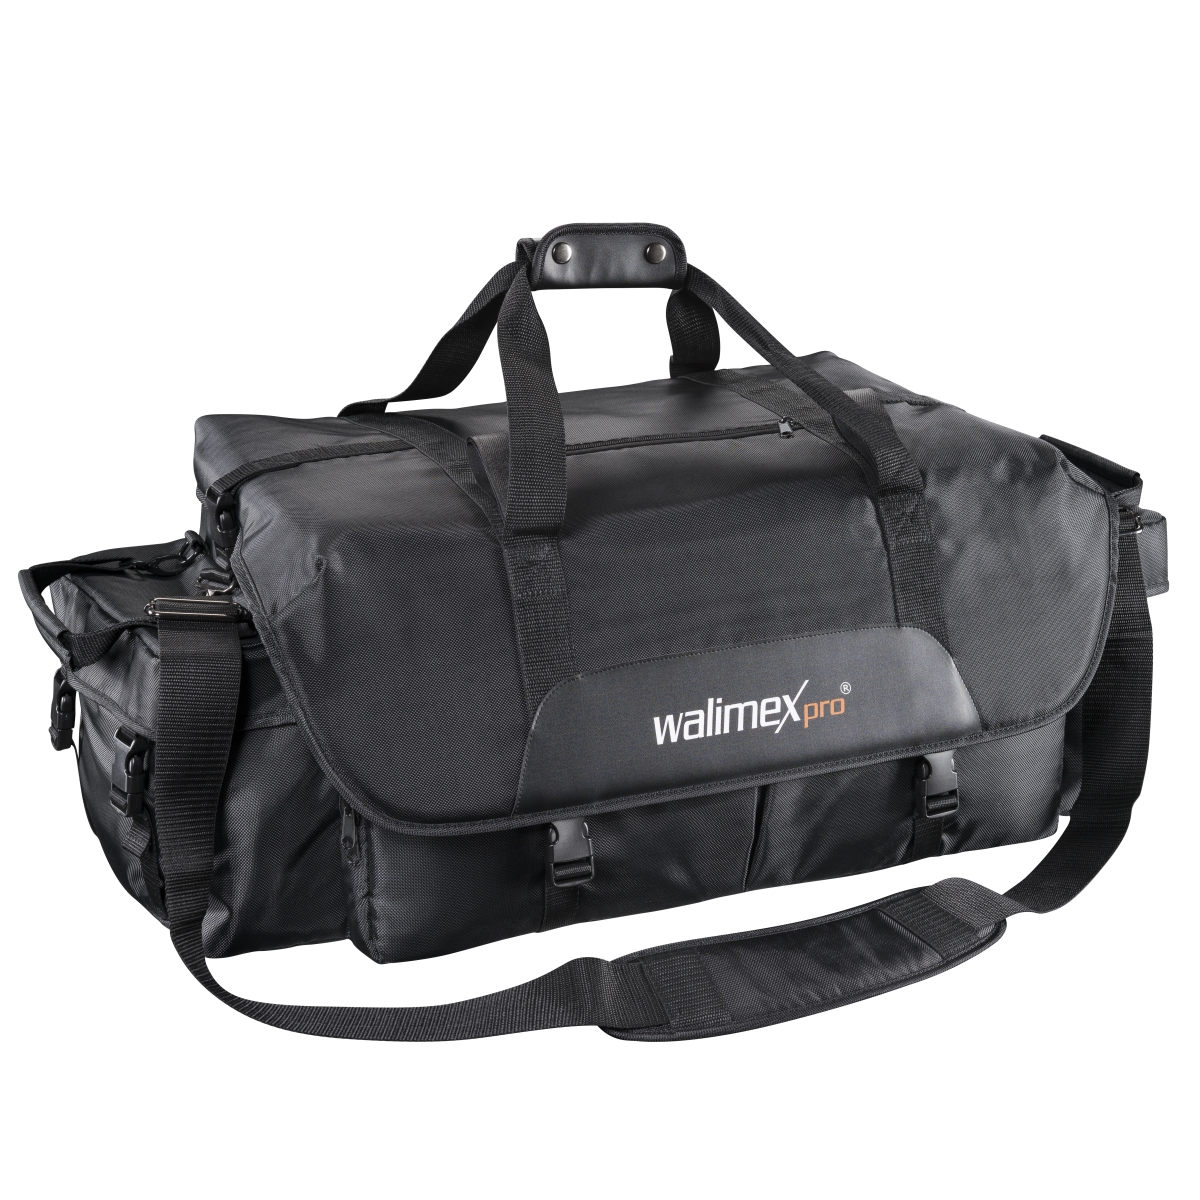 Walimex pro Photo and Studio Bag XXL